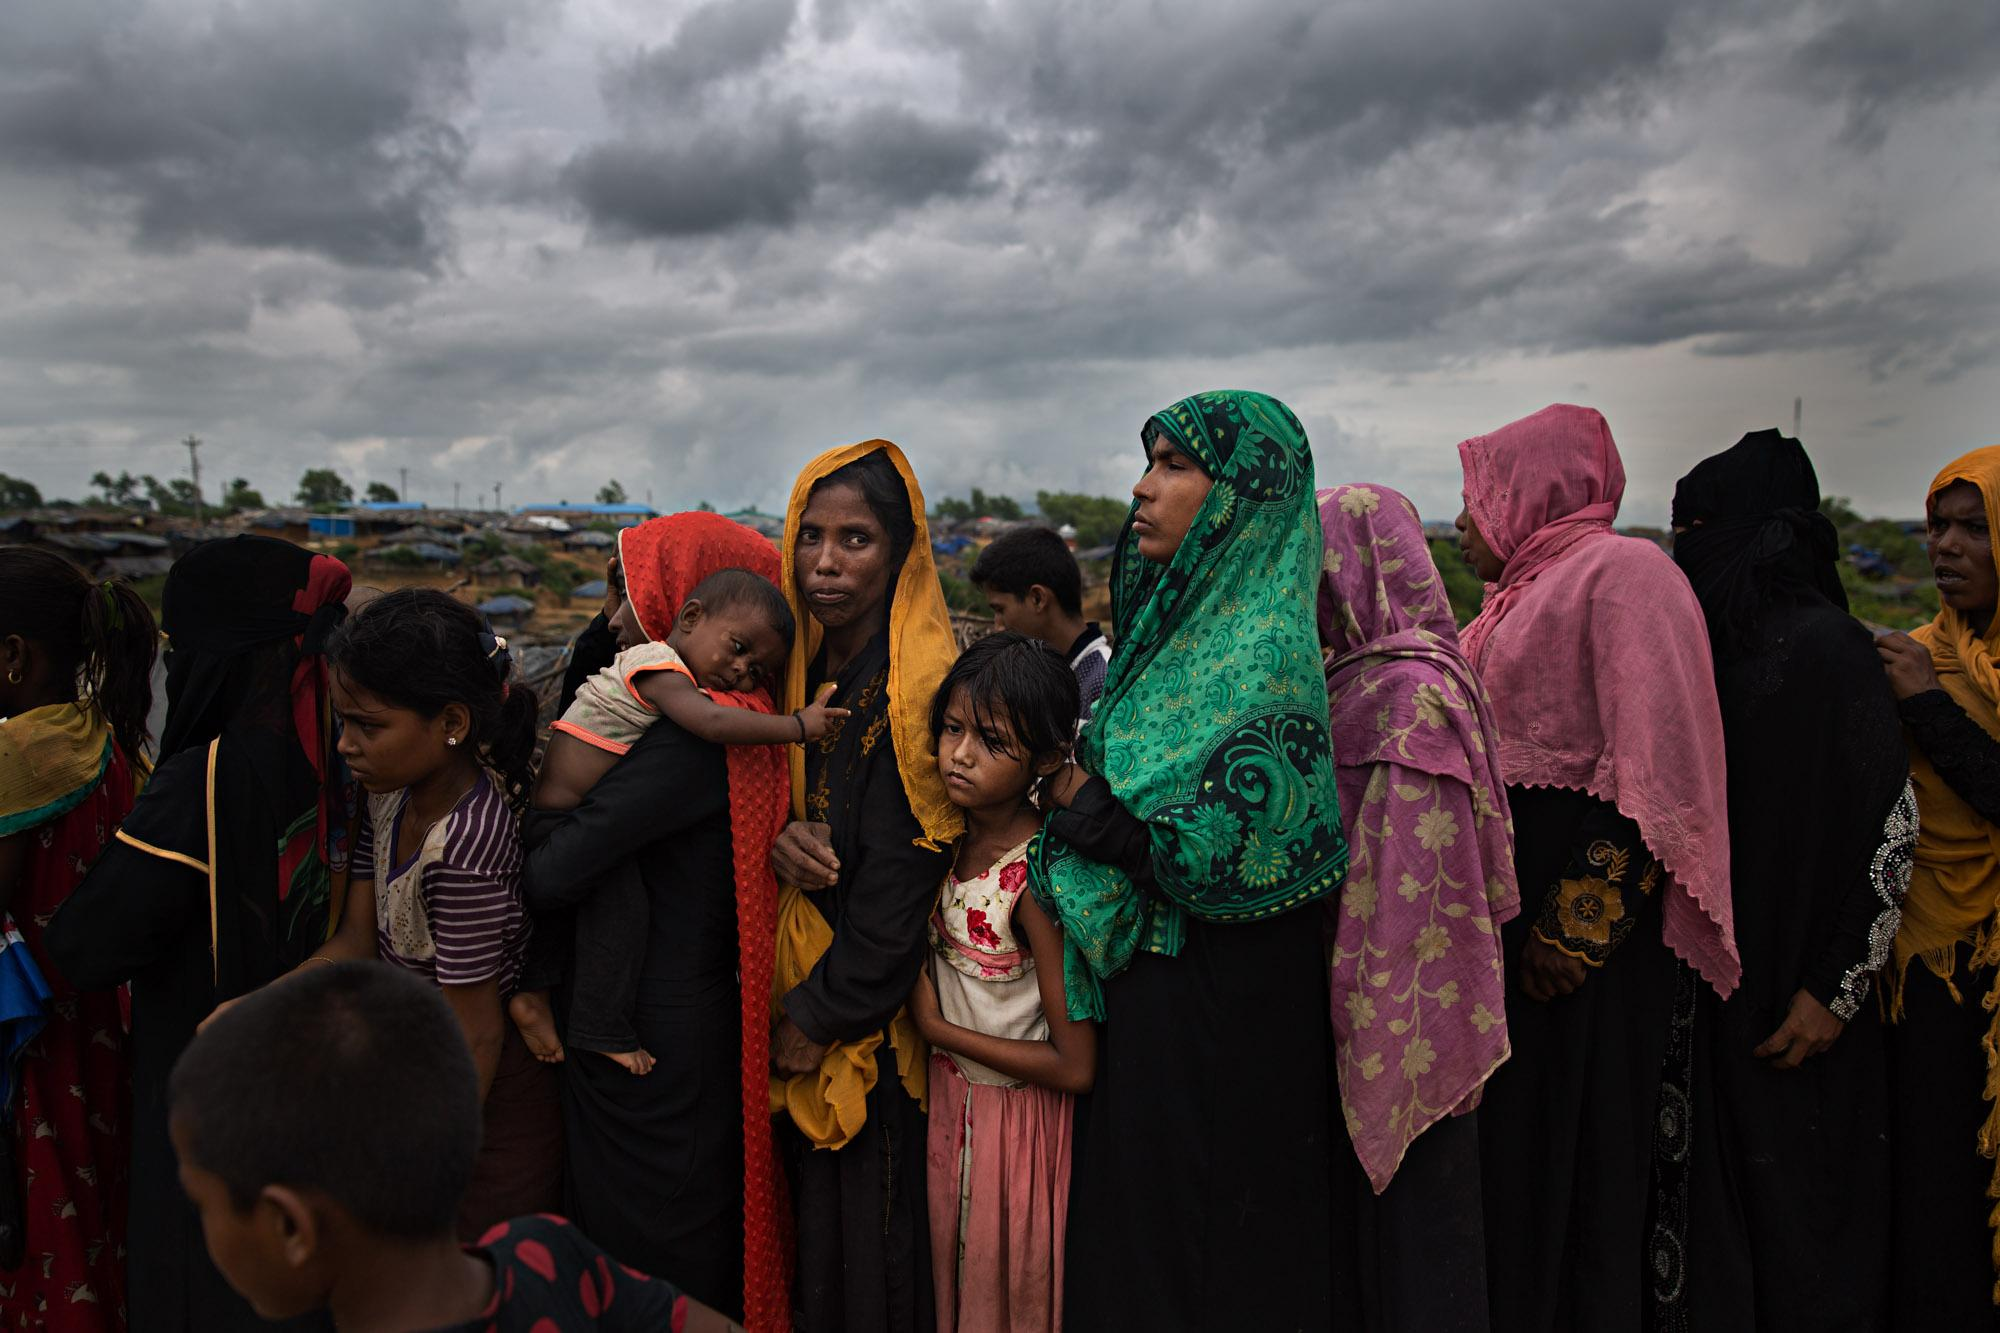 Rohingya women and girls wait in a food distribution line in a camp outside Cox's Bazar in Bangladesh.